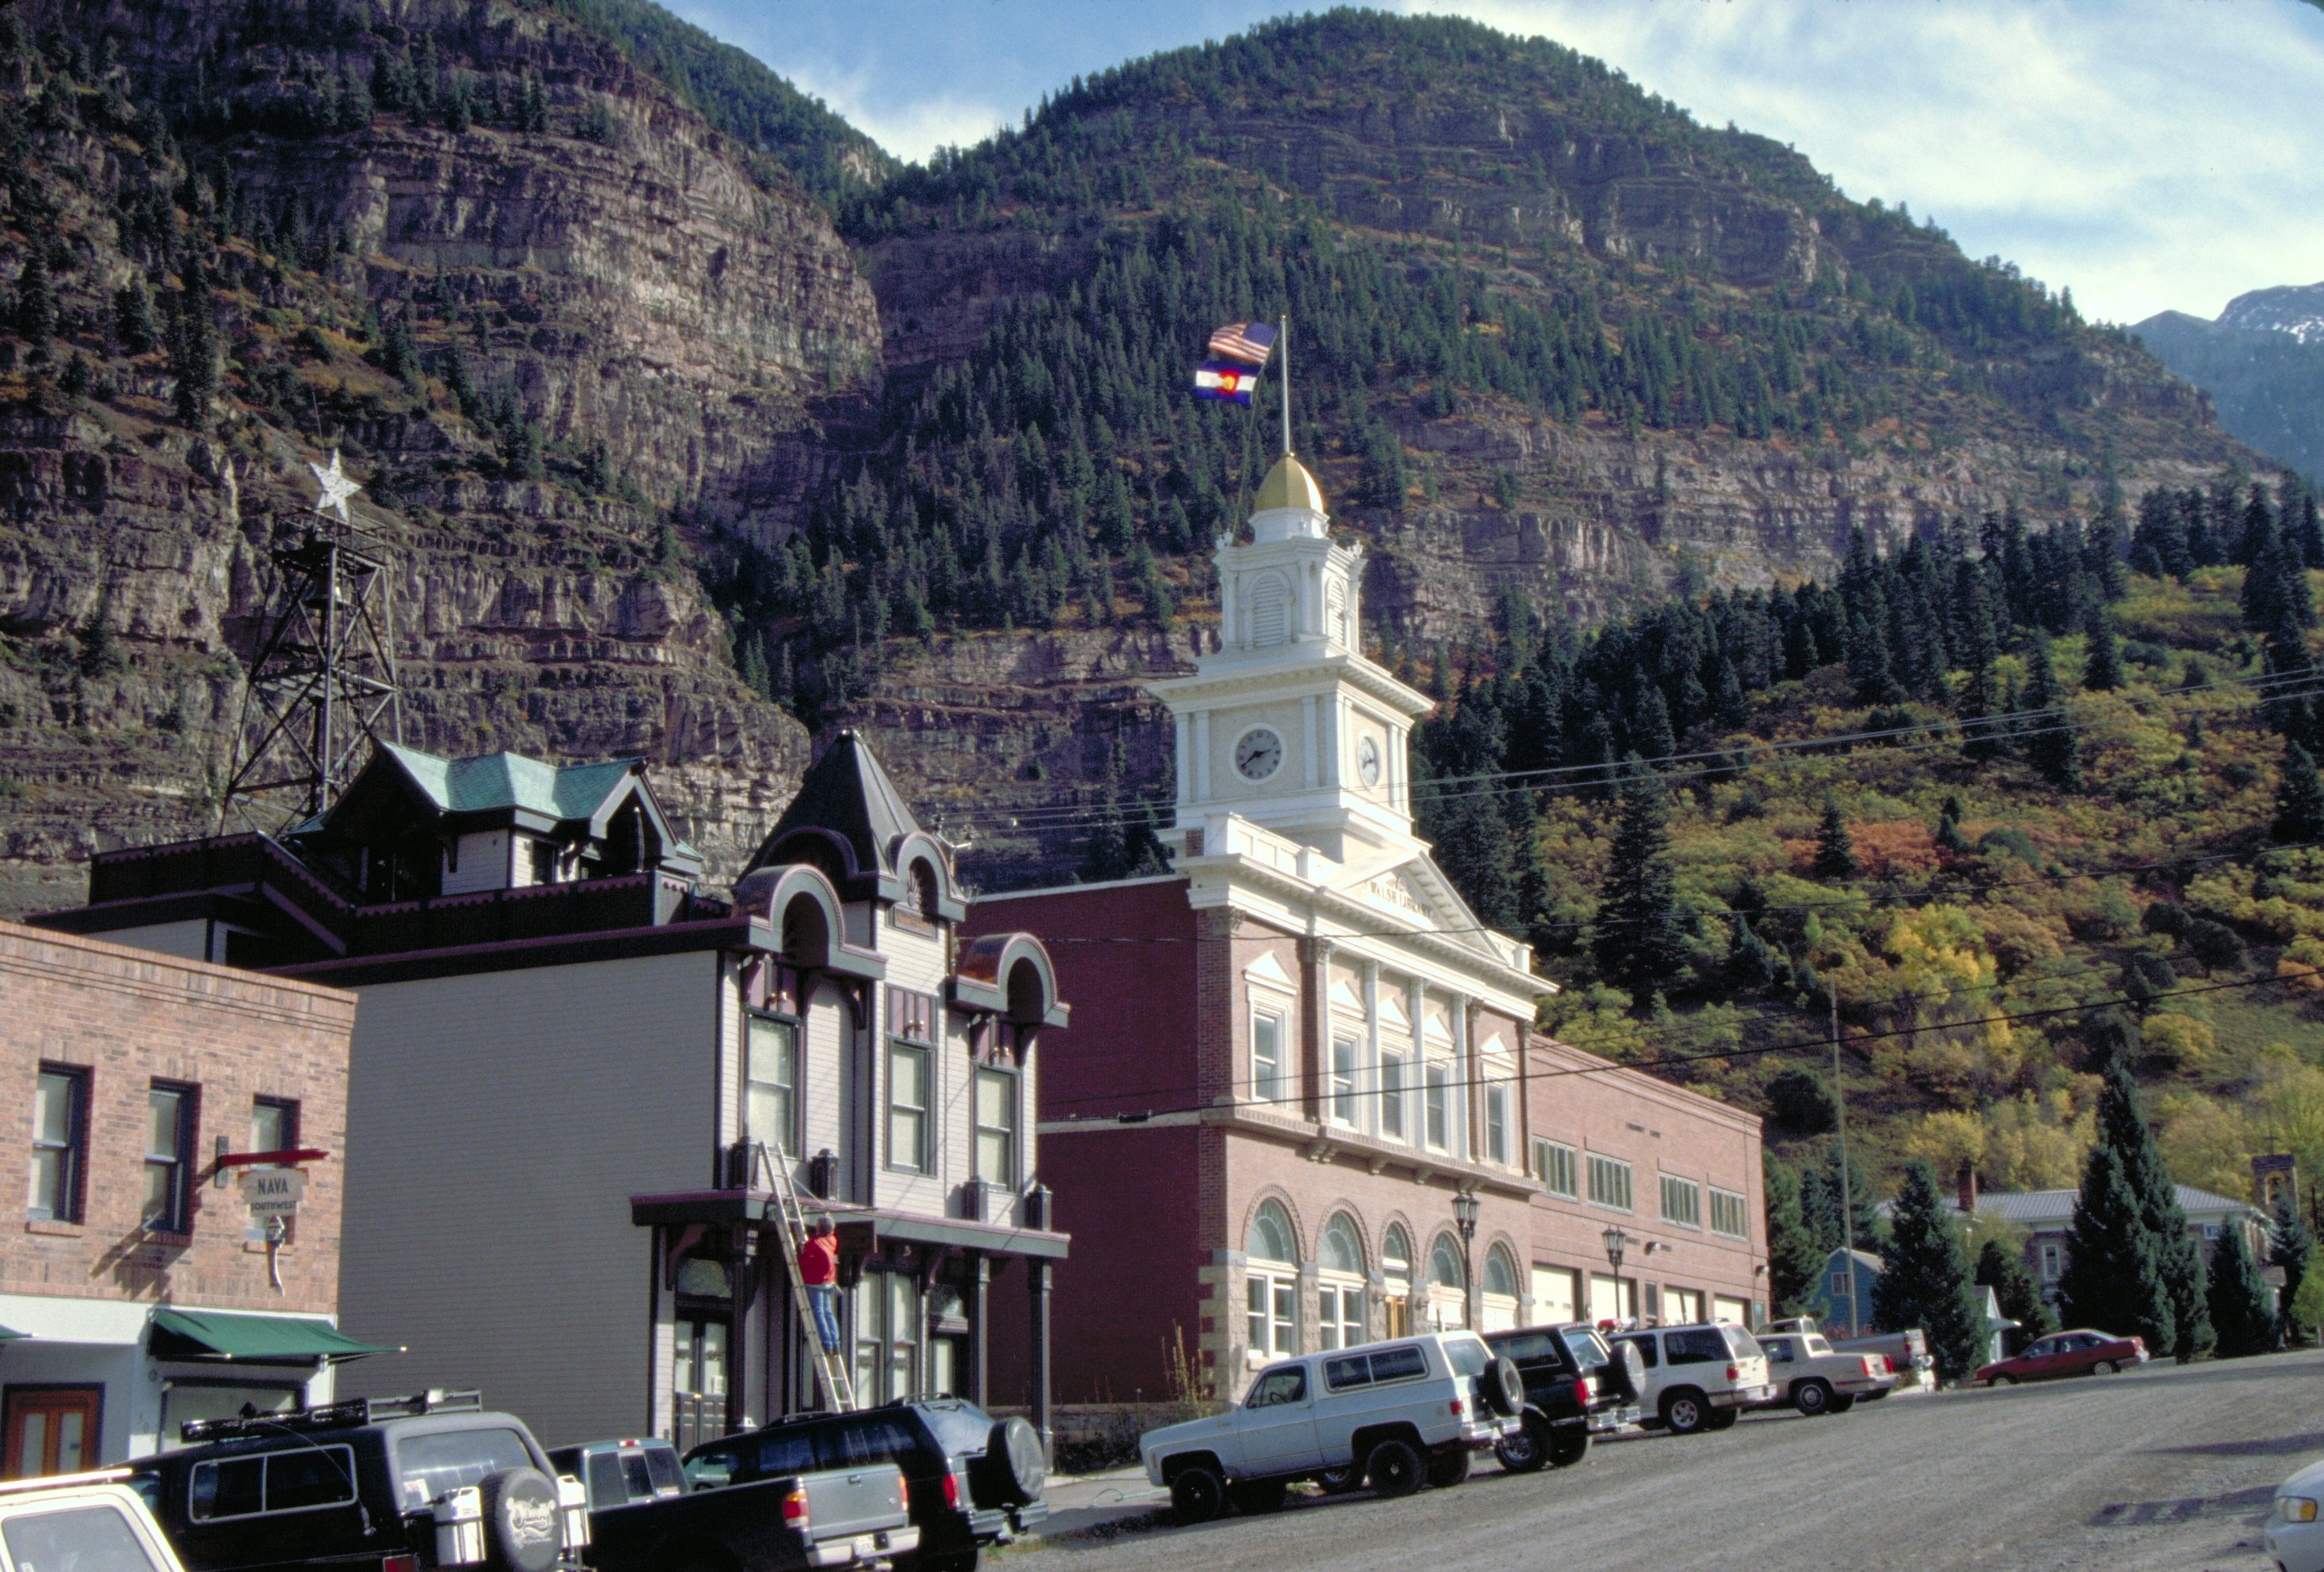 Ouray (CO) United States  City pictures : ouray, Colorado, United States What happens in ouray right now!